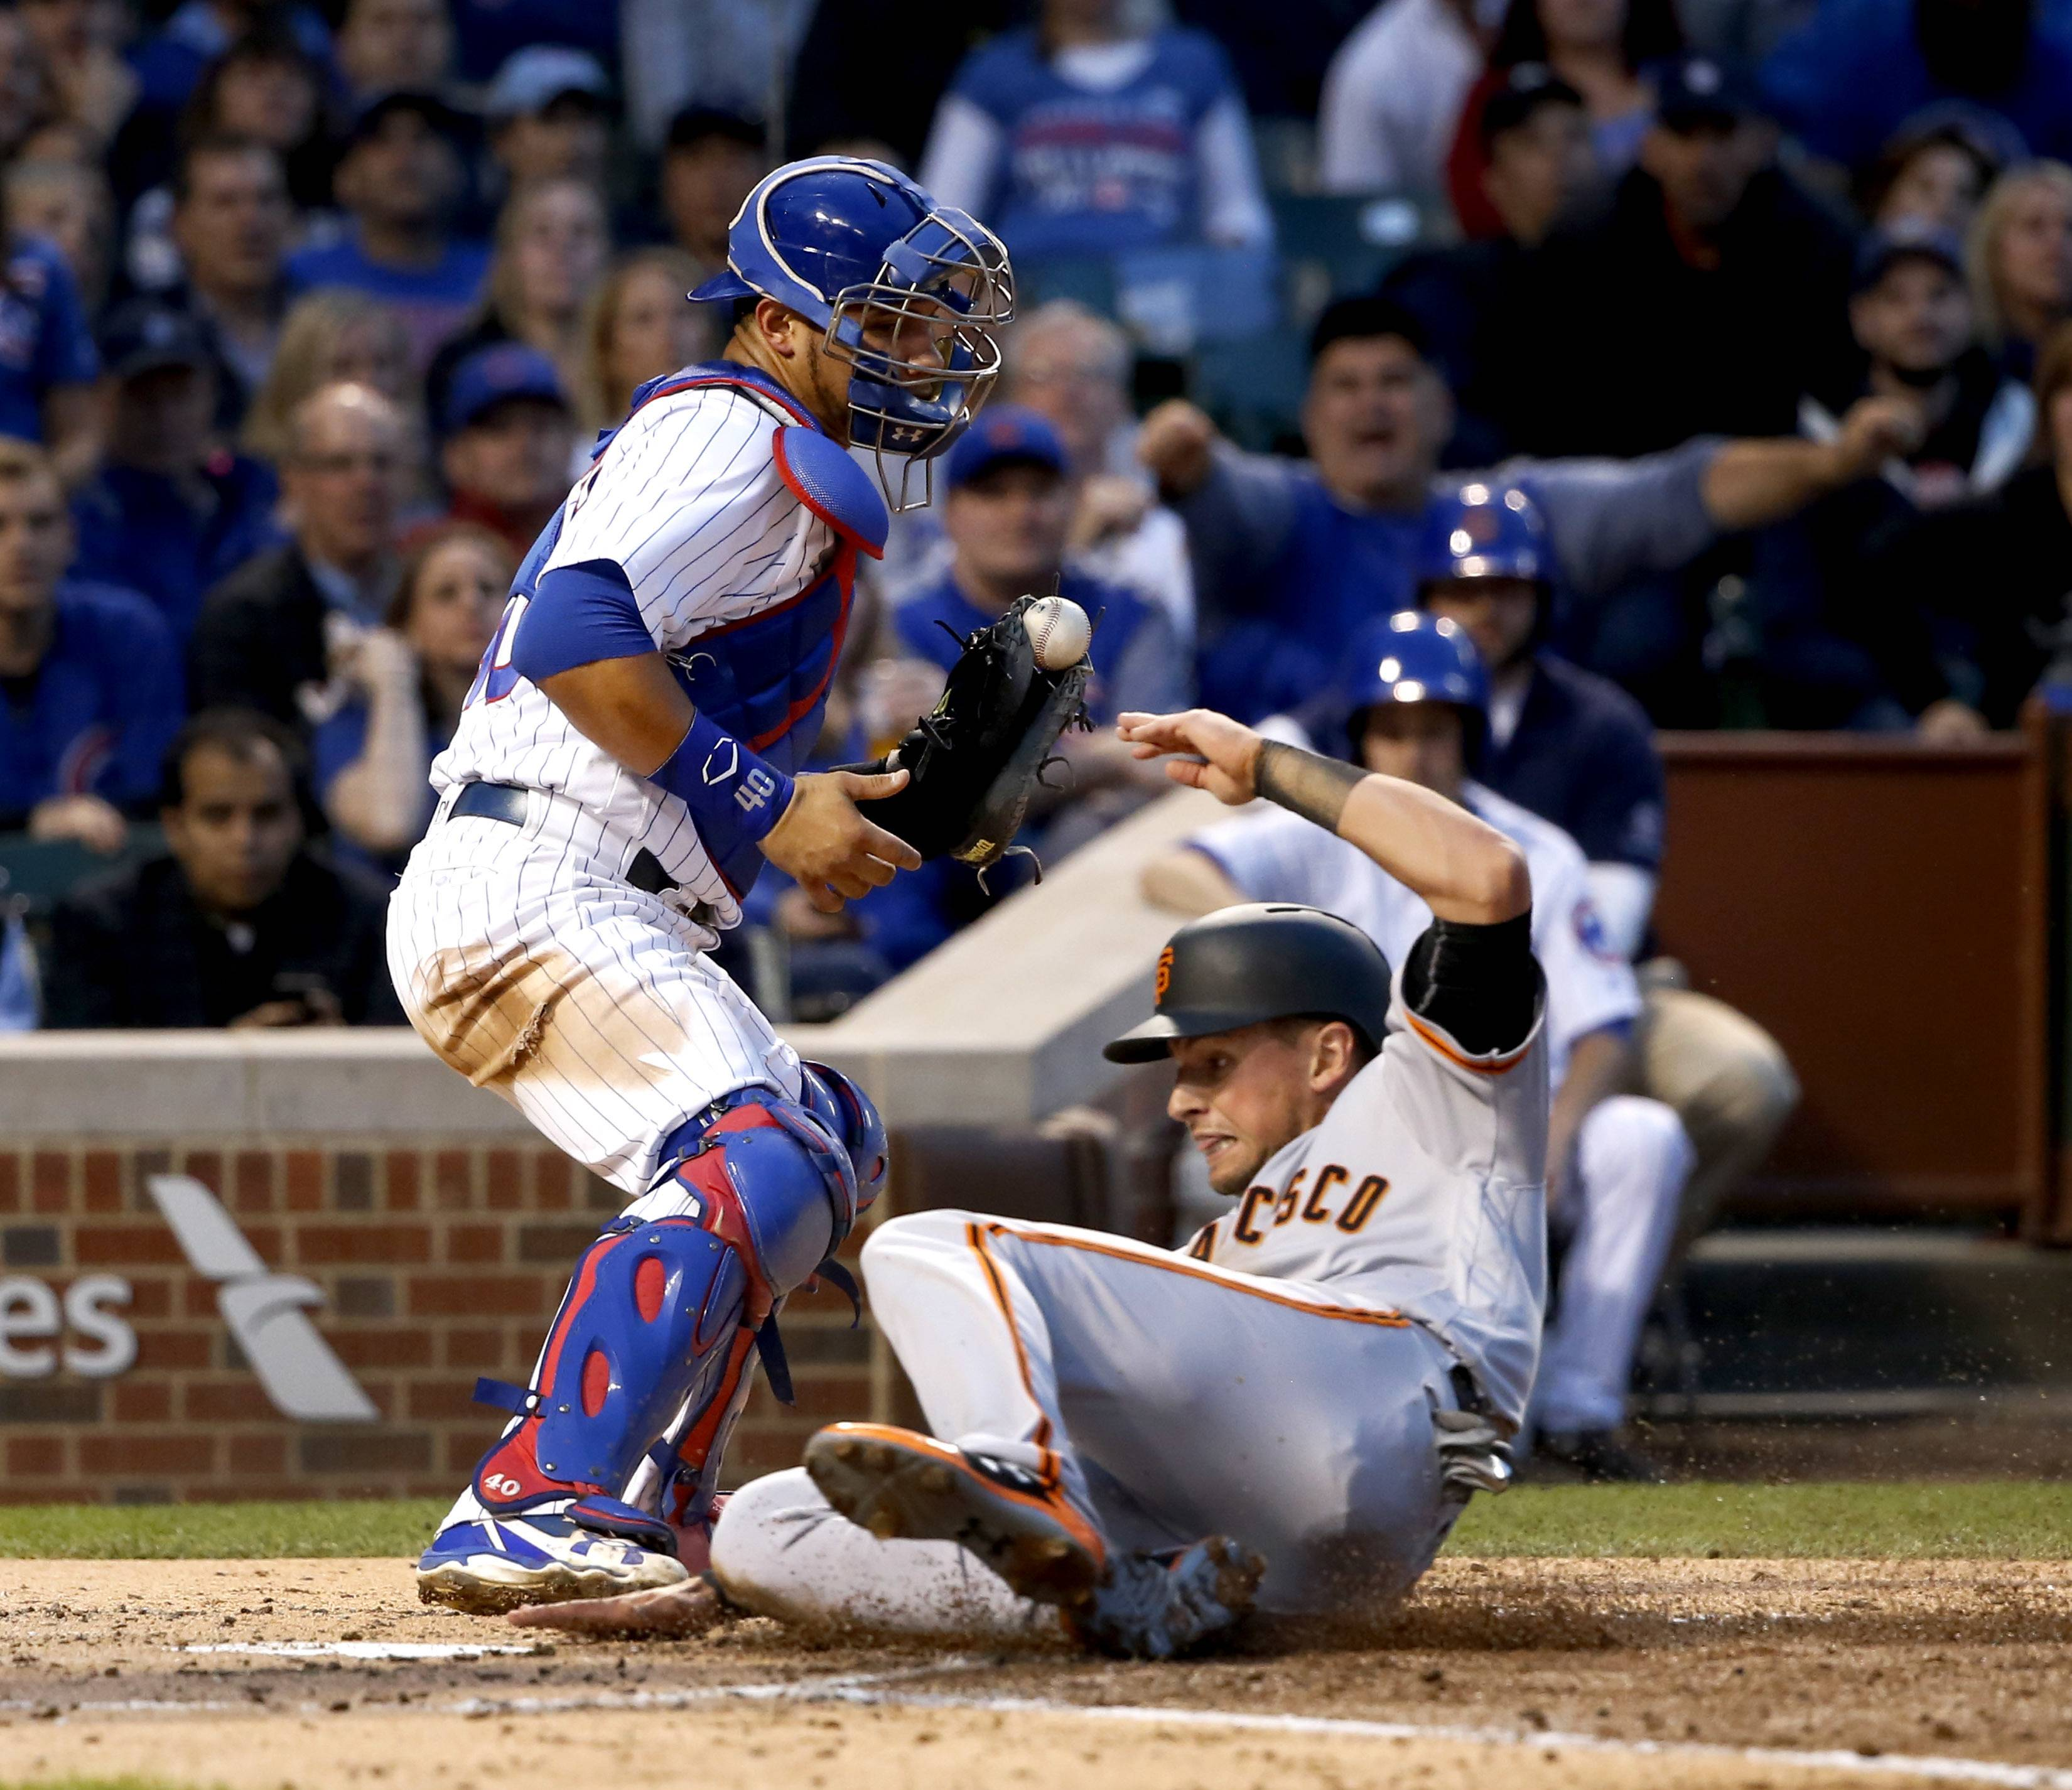 Cubs still struggling, lose to Giants 6-4